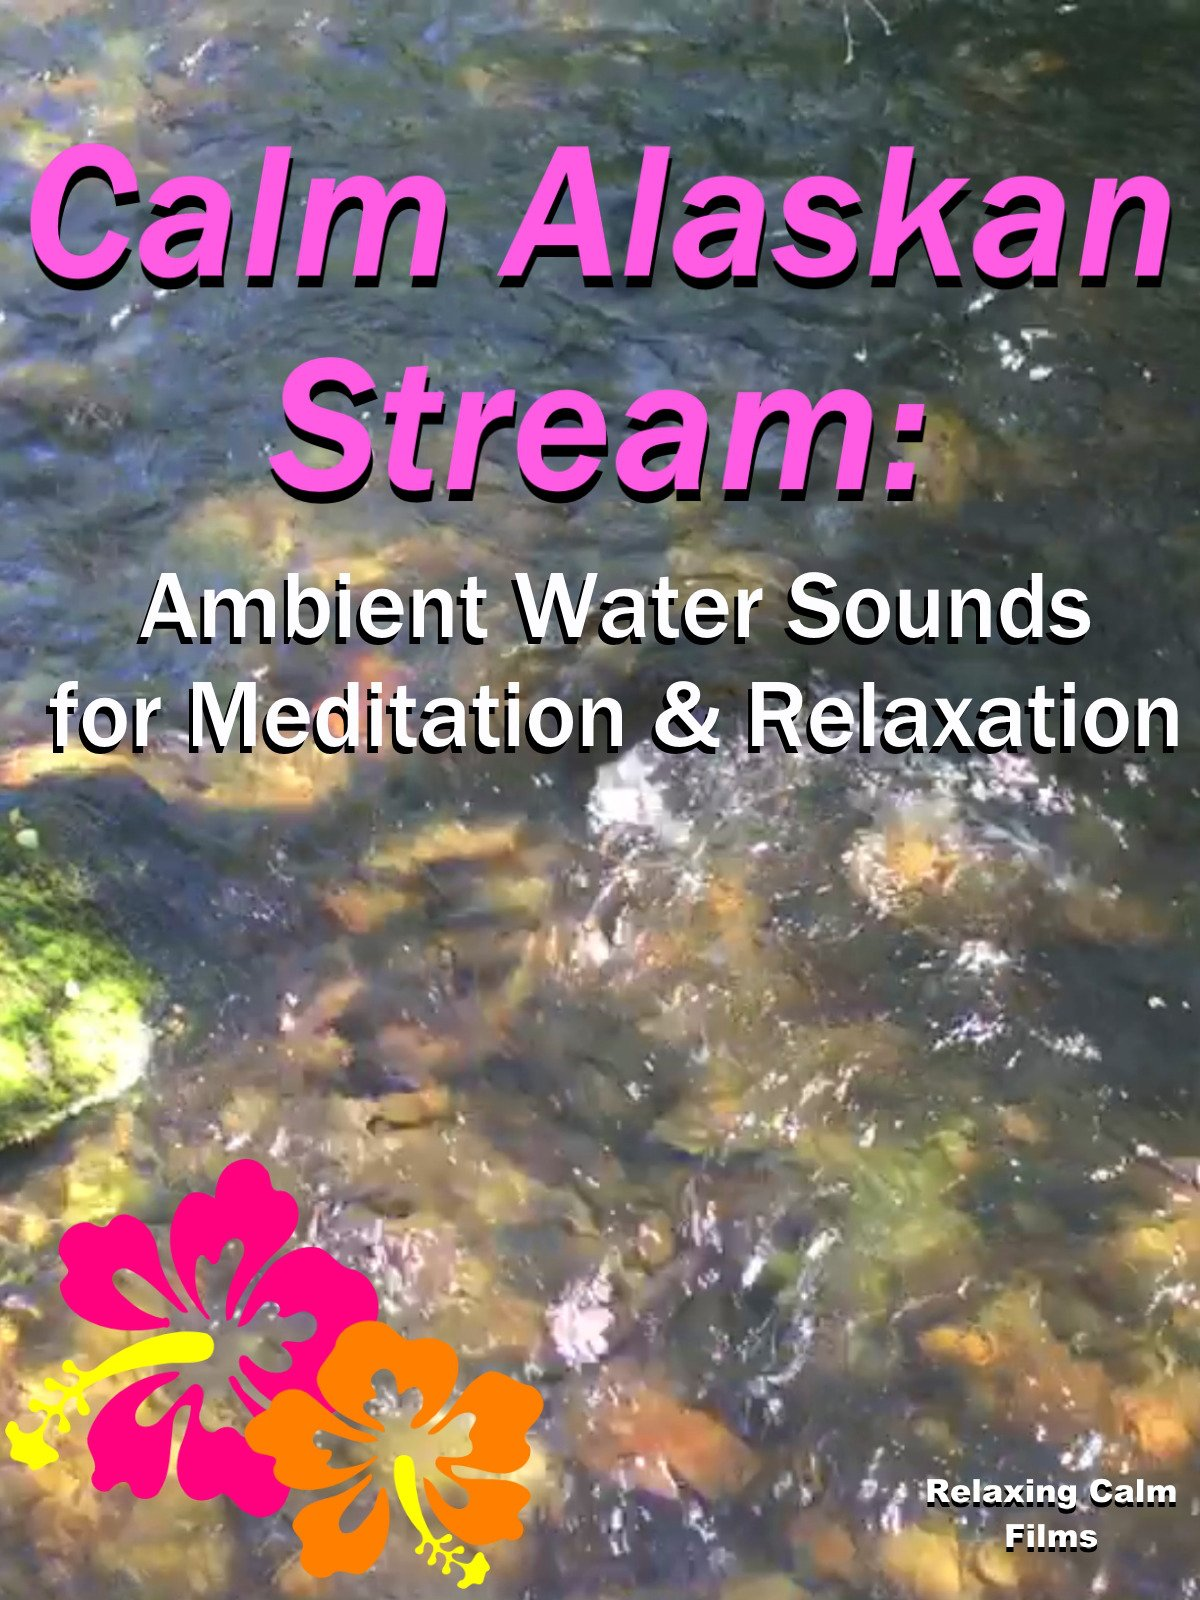 Calm Alaskan Stream: Ambient Water Sounds for Meditation & Relaxation